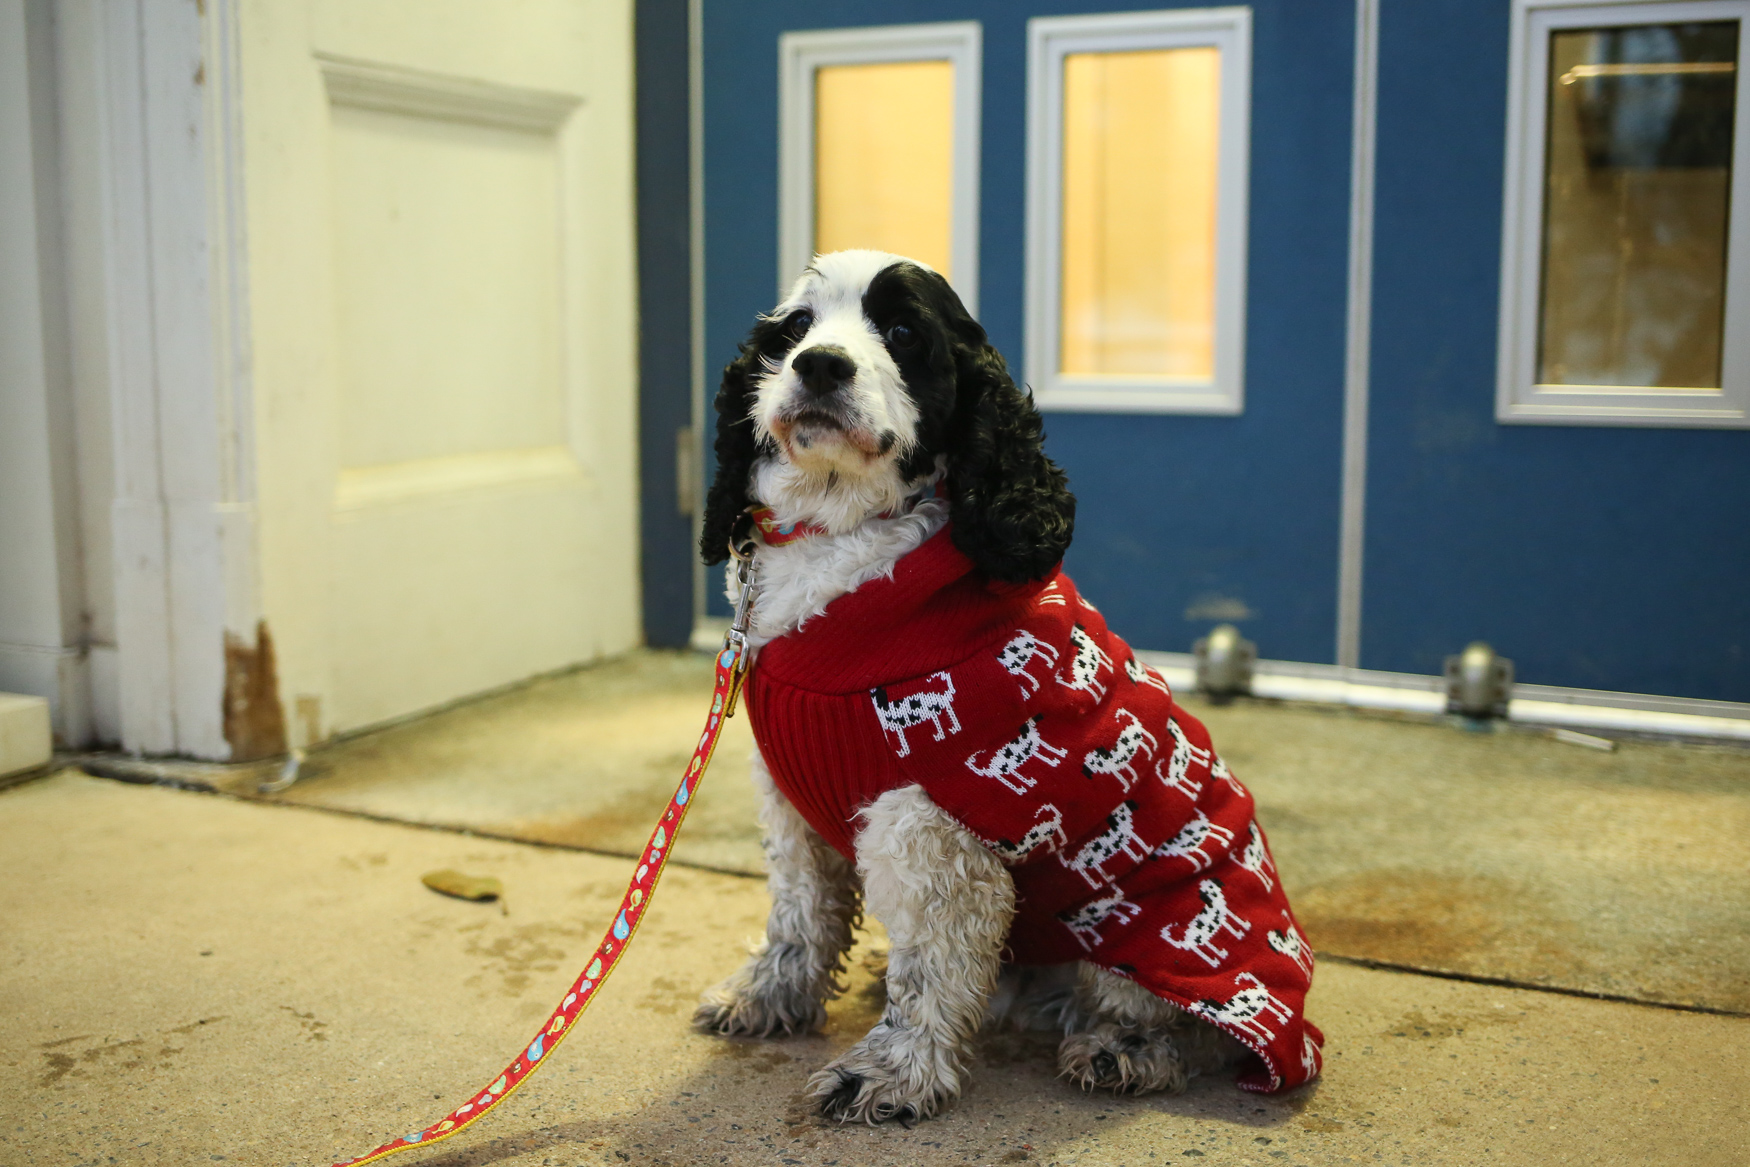 This week's Ruffined star is Tenley. Named for Tenleytown, this 3ish year-old cocker spaniel was a foster fail from{ }OBG Cocker Spaniel Rescue in NoVa. Tenley likes noisy toys, but nothing trumps his love of swimming. Tenley was adopted after his mom was looking for a companion for her older cocker spaniel - another rescue pup. Although Tenley wasn't sure of himself at first, his mom says his confidence has grown a lot over the last year and a half. In fact, on New Year's eve he let everyone pet him! You can keep up with Tenley and his brother at{ }@back2JMayer on Instagram.{ }